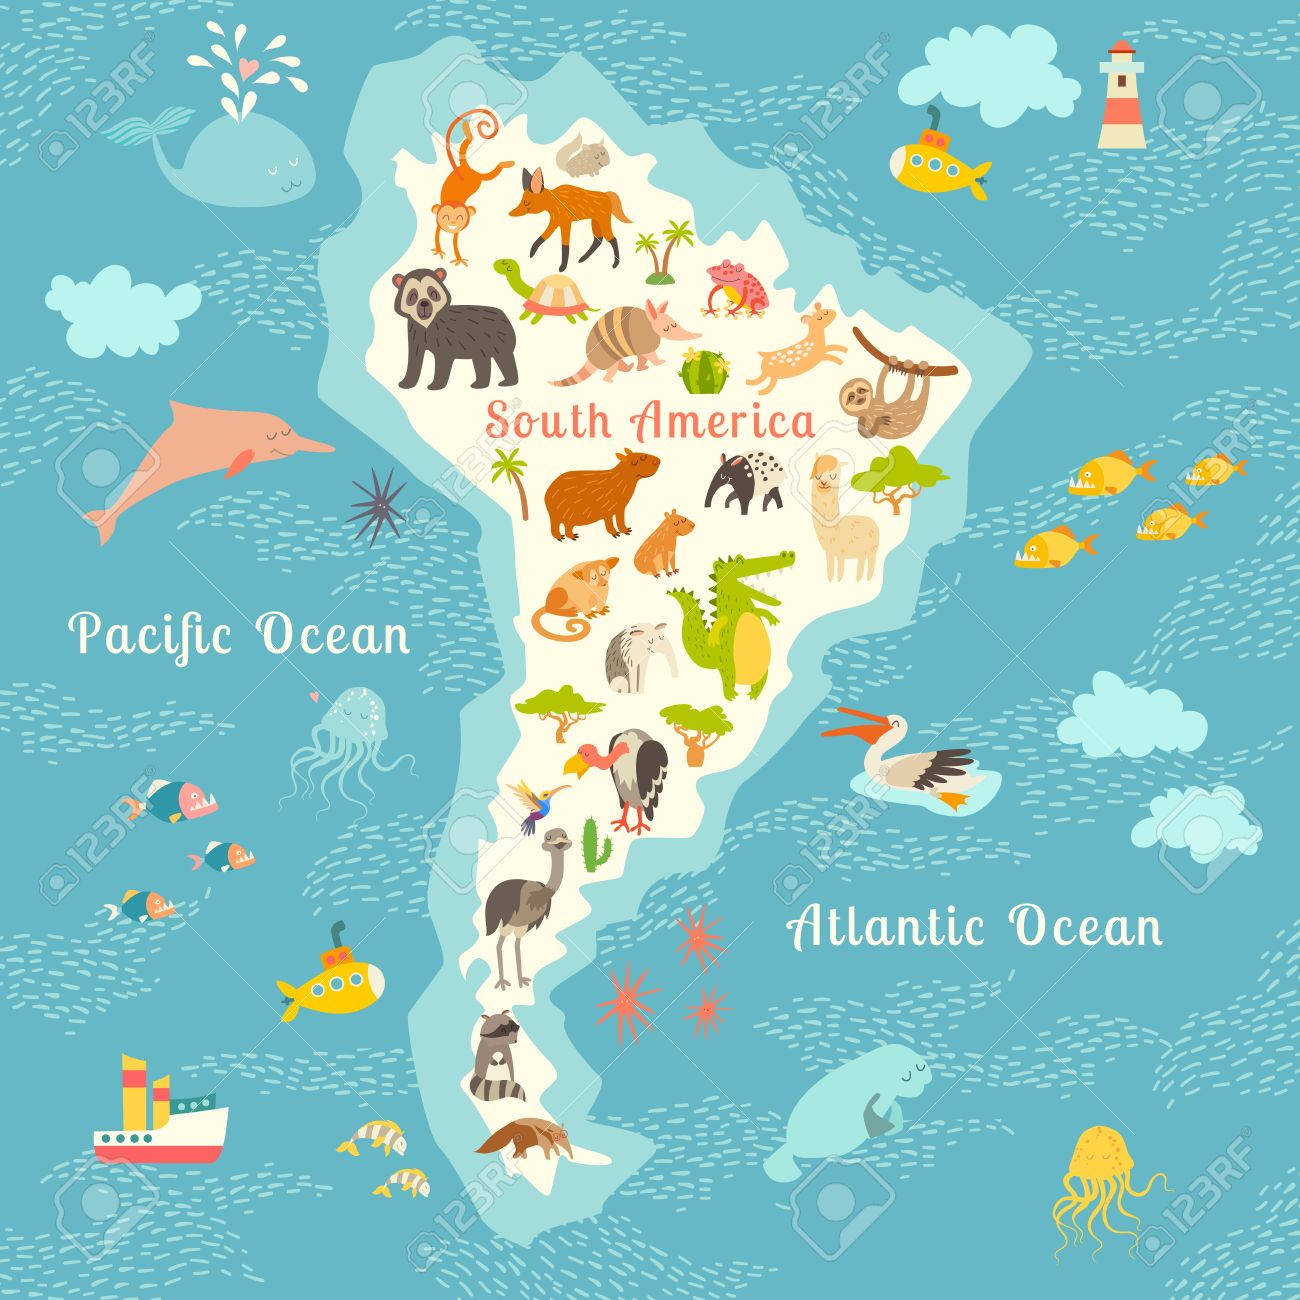 Animals world map sorth america vector illustration preschool animals world map sorth america vector illustration preschool baby continents gumiabroncs Image collections